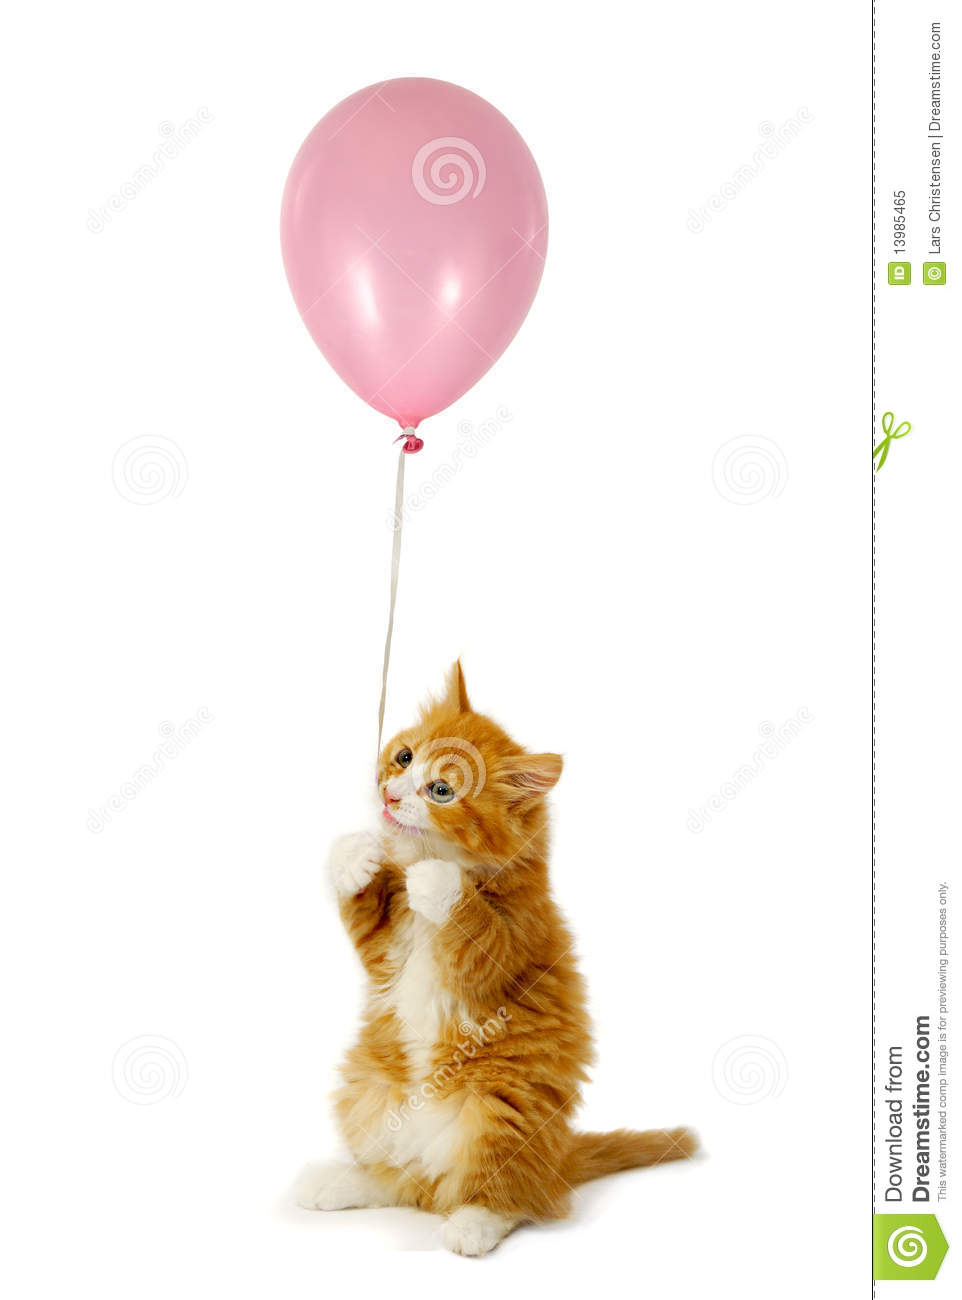 Cat And Balloon Royalty Free Stock Photo Image 13985465